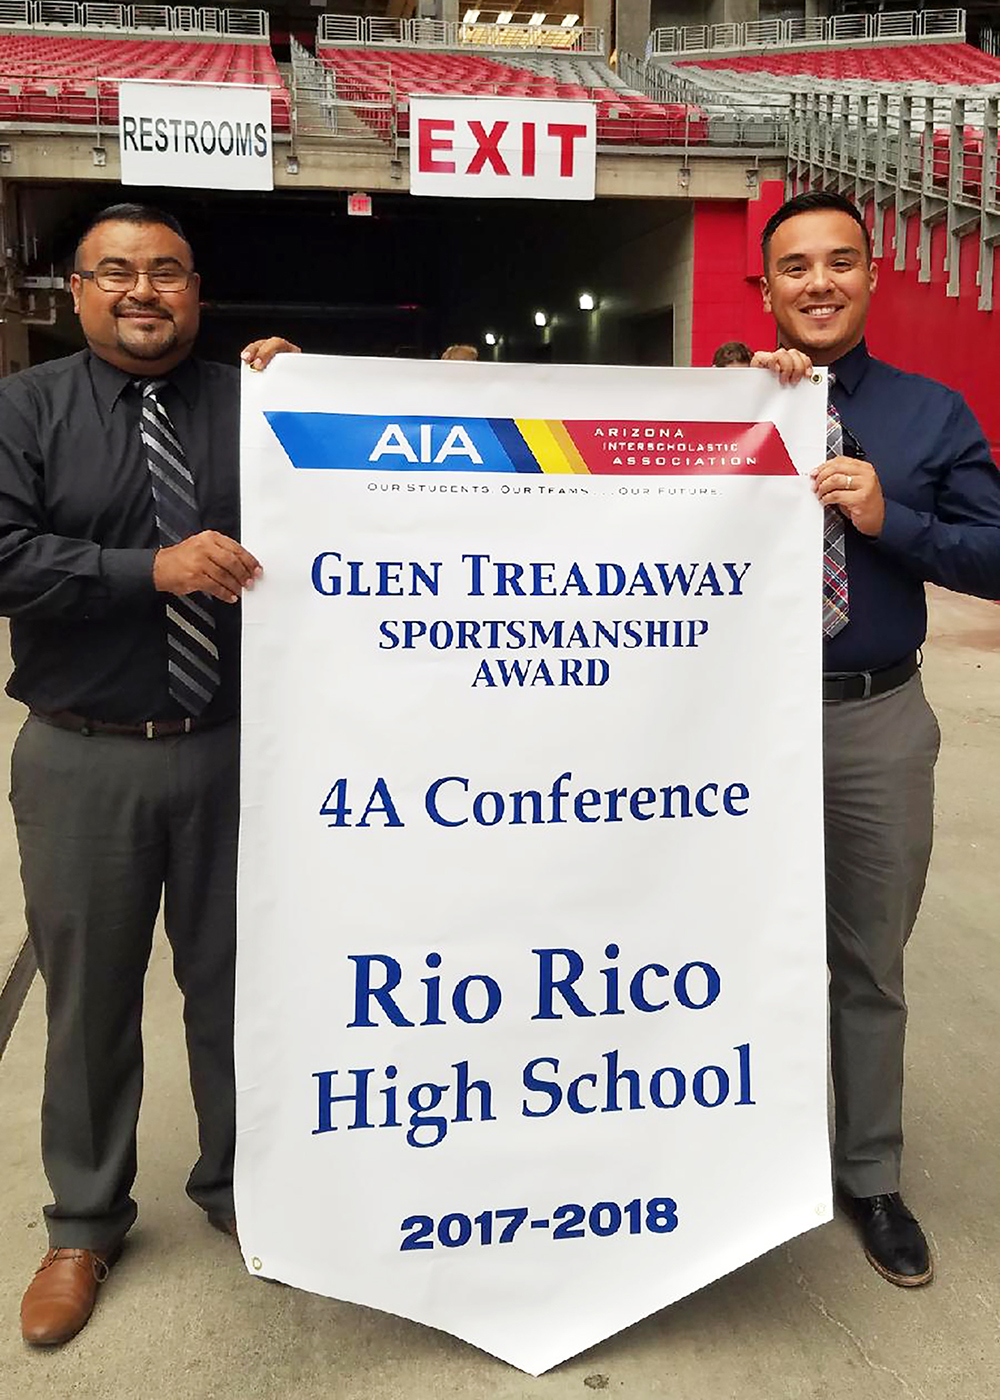 Rio Rico High School awarded AIA 4A Glen Treadaway Sportsmanship Award 1_RRHS-AIA-Sportsmanship-Award_7057_20180521